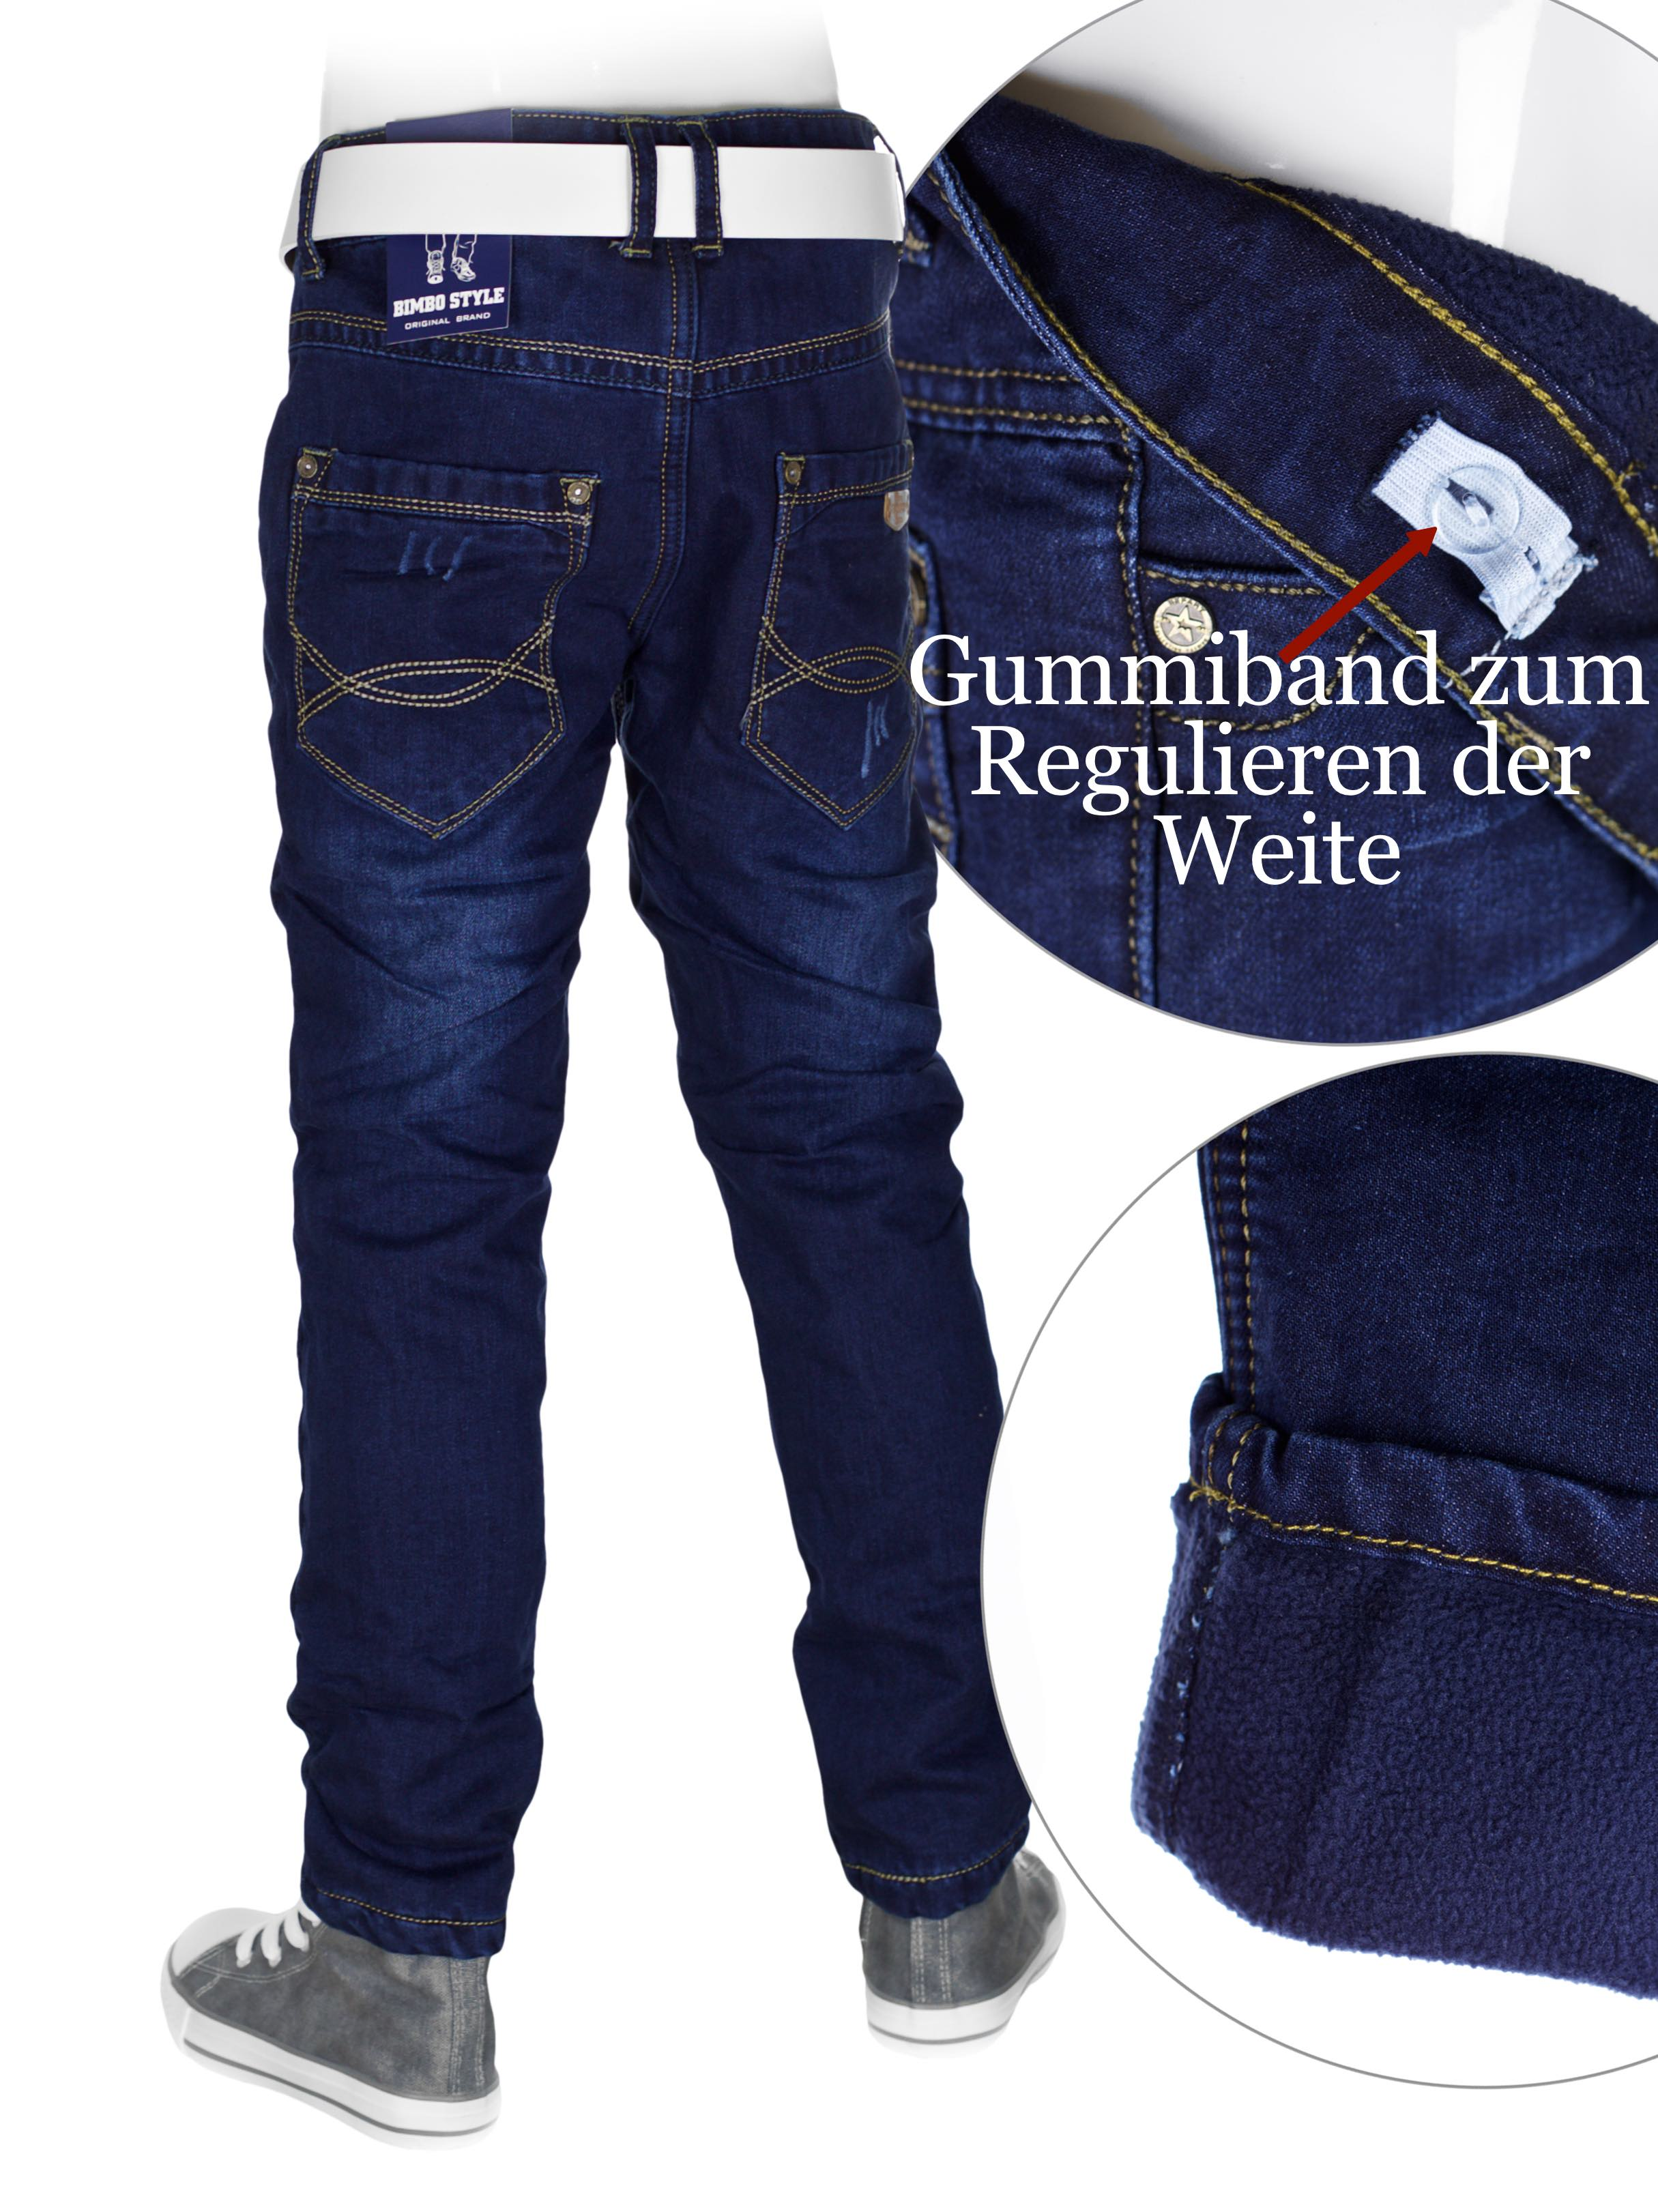 Kinder Thermohose Neu Jungen Thermohose Thermojeans Hose Jungen Jeans Bis 158